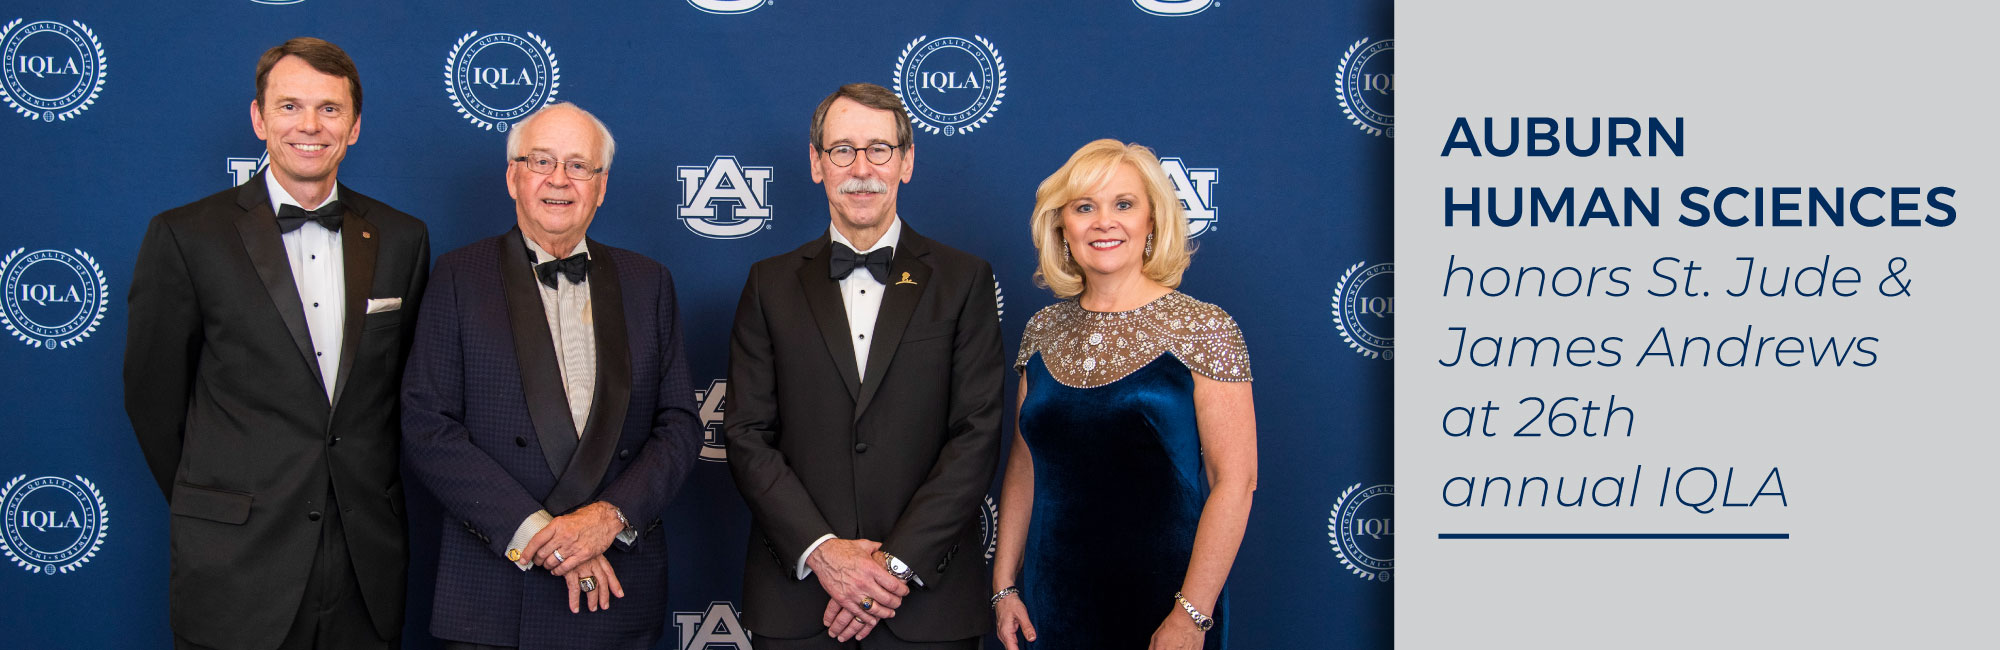 Photo of Bill Hardgrave, James Andrews, James Downing and Susan Hubbard in front of interlocking AU logo on blue background on left side with Auburn Human Sciences honors St. Jude and James Andrews at 26th annual IQLA on right side in blue font on gray backgroun